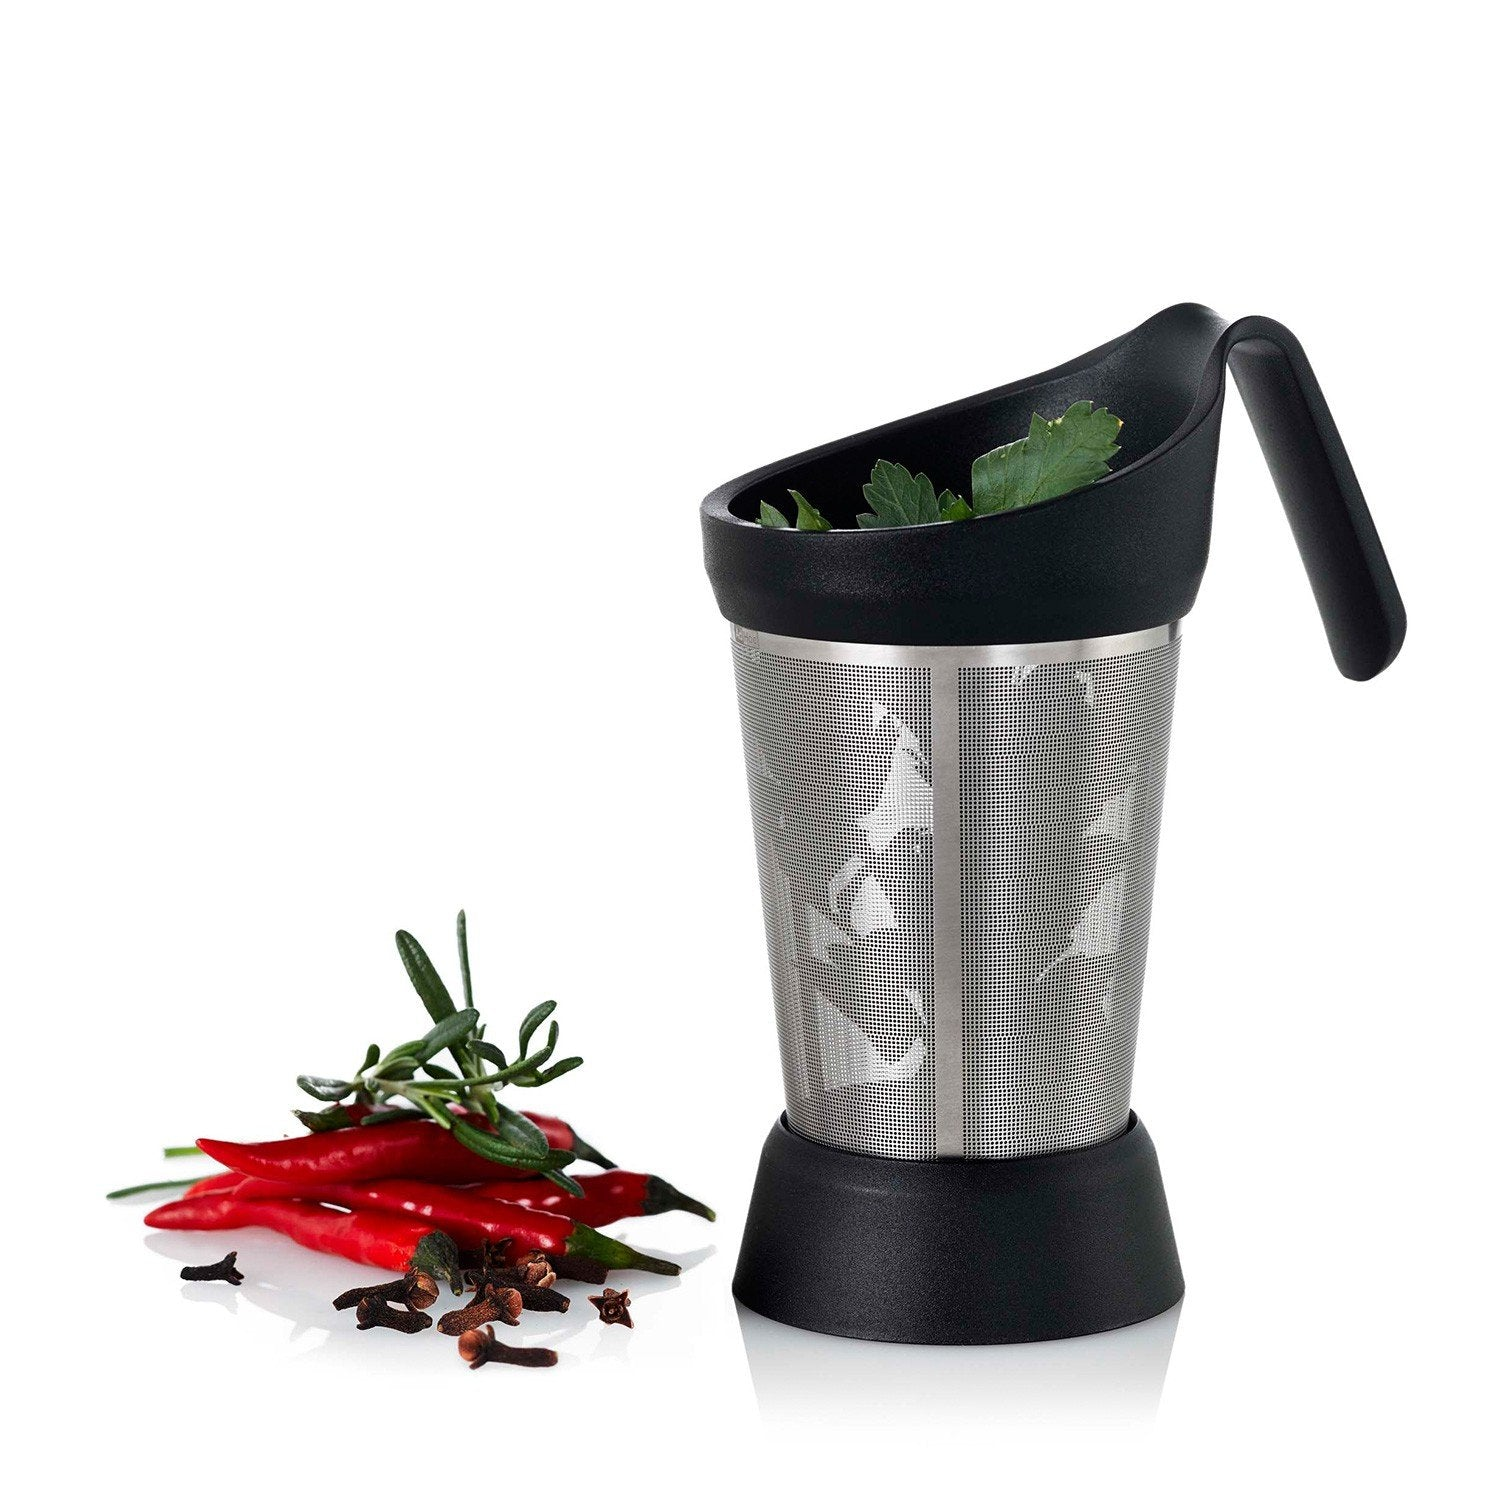 AdHoc Spice Infuser with Stand